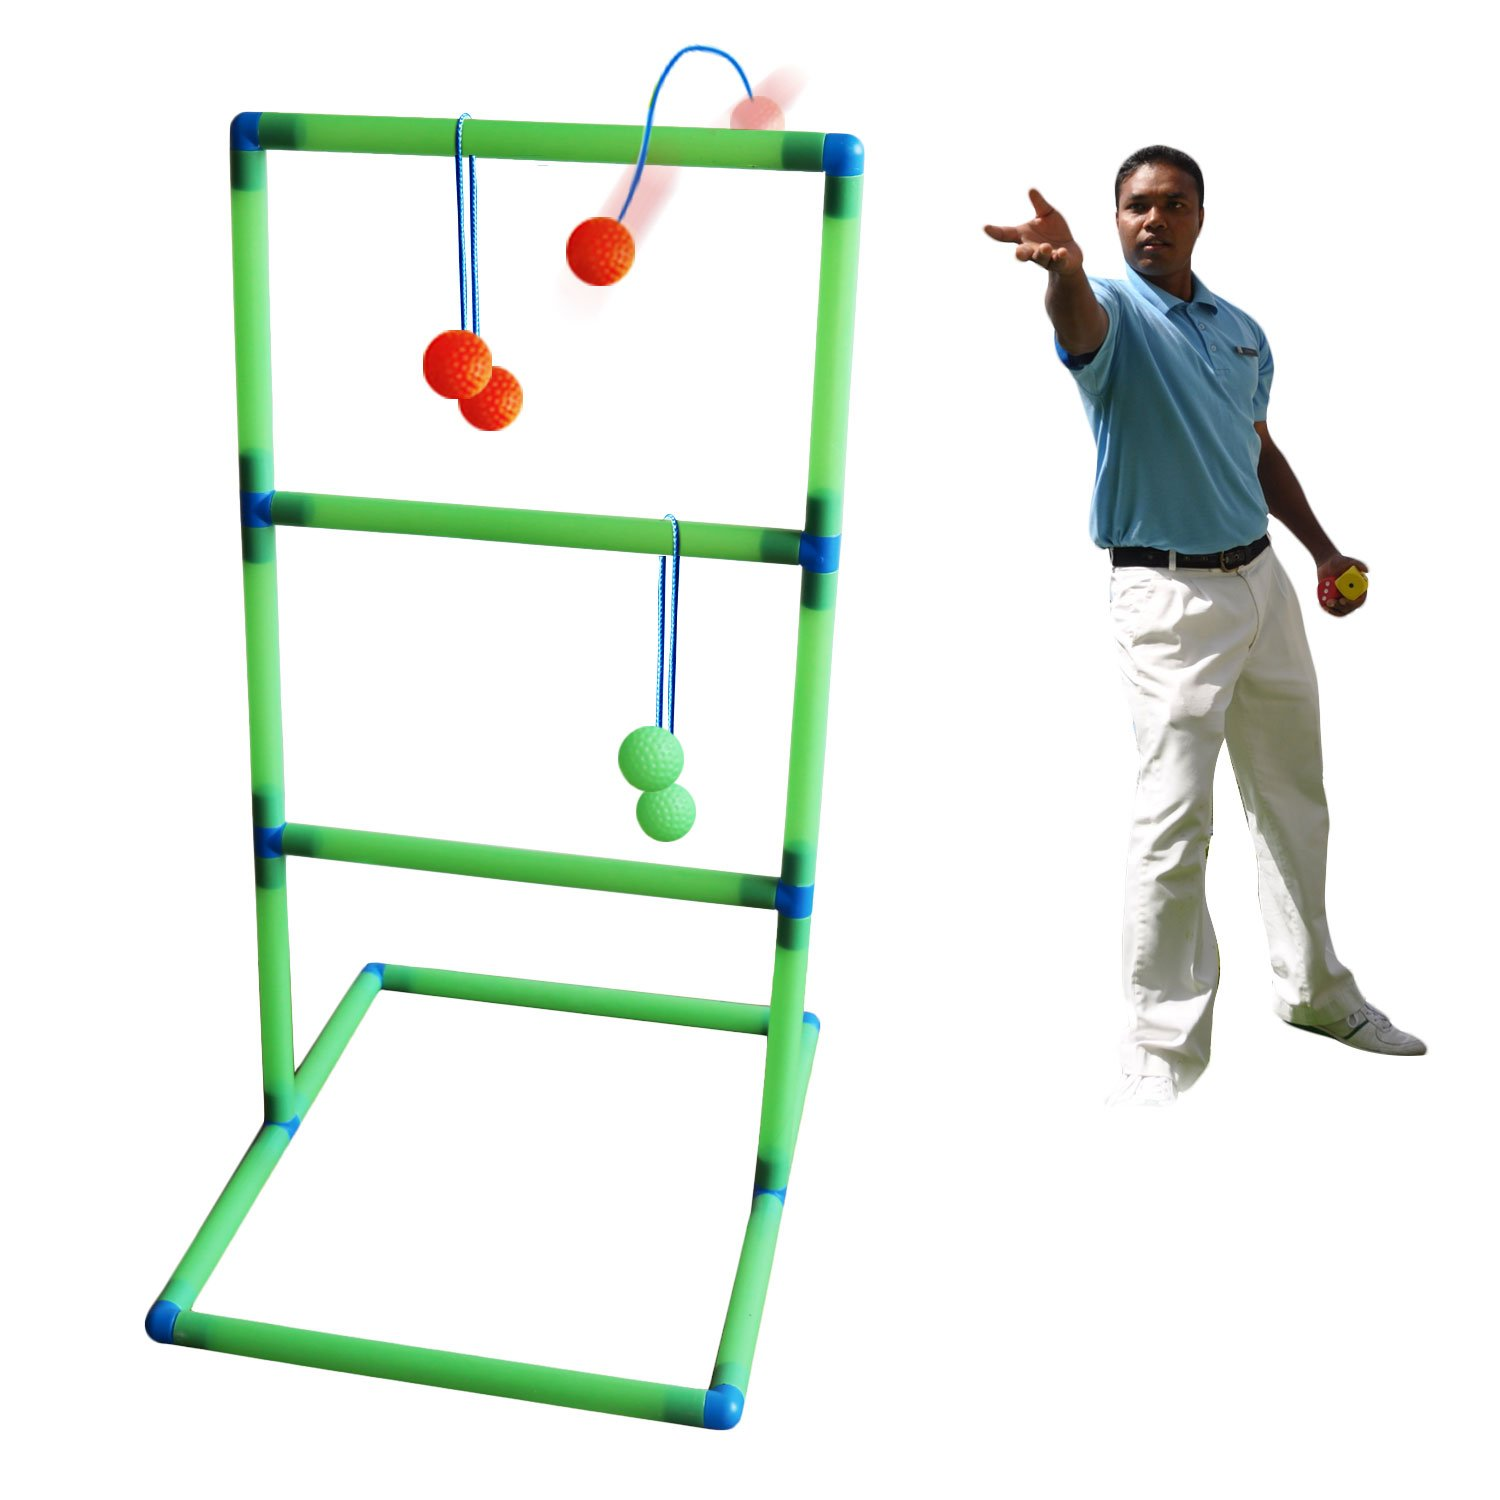 Freshday Luminous Ladder Ball Game Set, with A Flashlight(Battery not included), for Adults & Kids Game for - Backyard, Beach, Lawn, Pool, Camping by Fresh O2